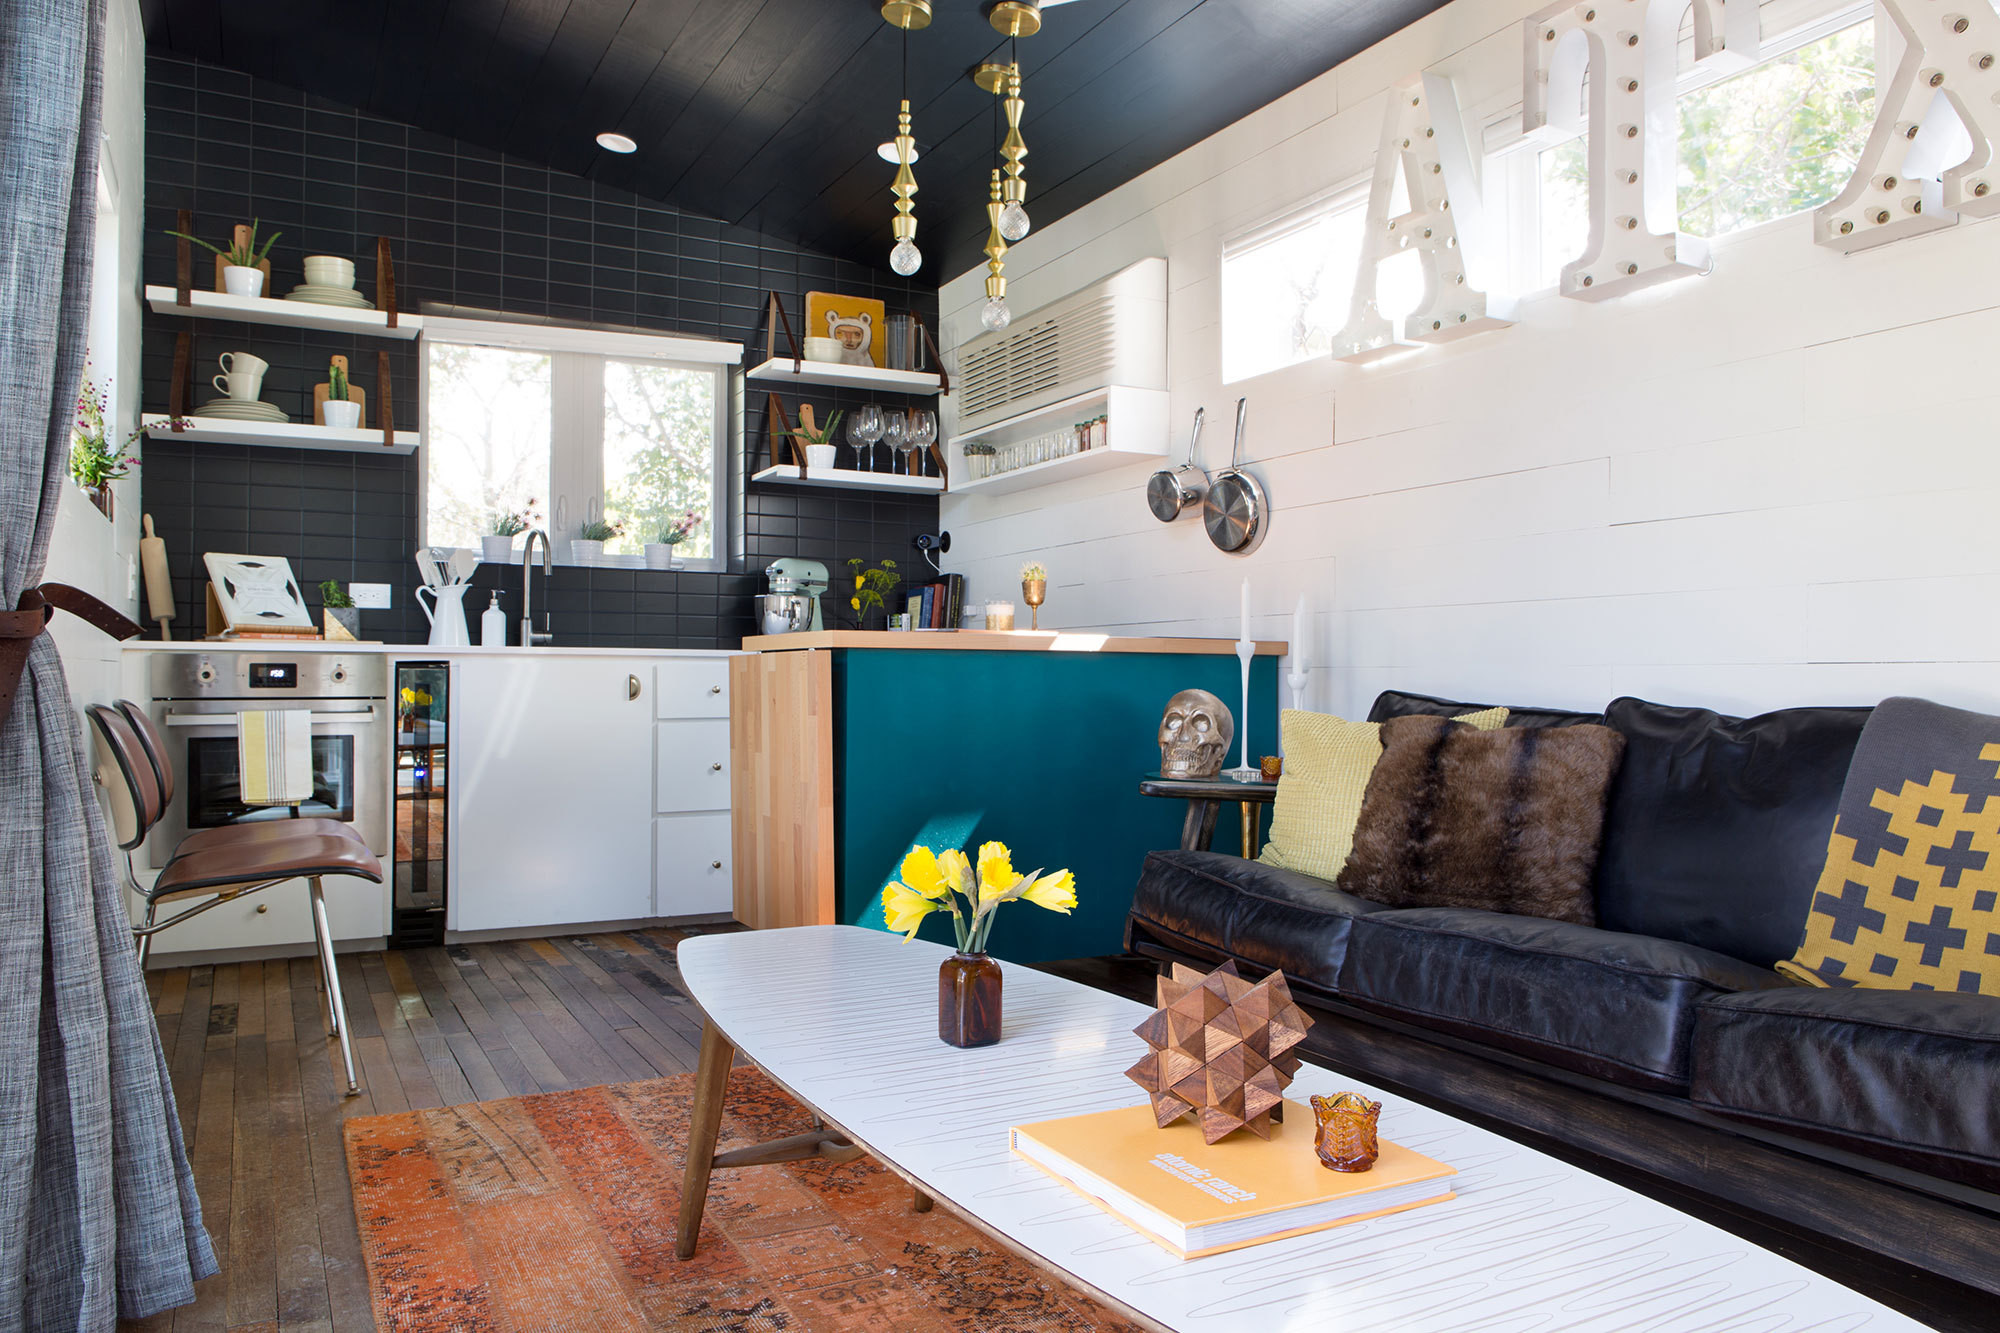 A compact yet efficient kitchen and living area comprises one of two connected trailers in Kim Lewis's design.